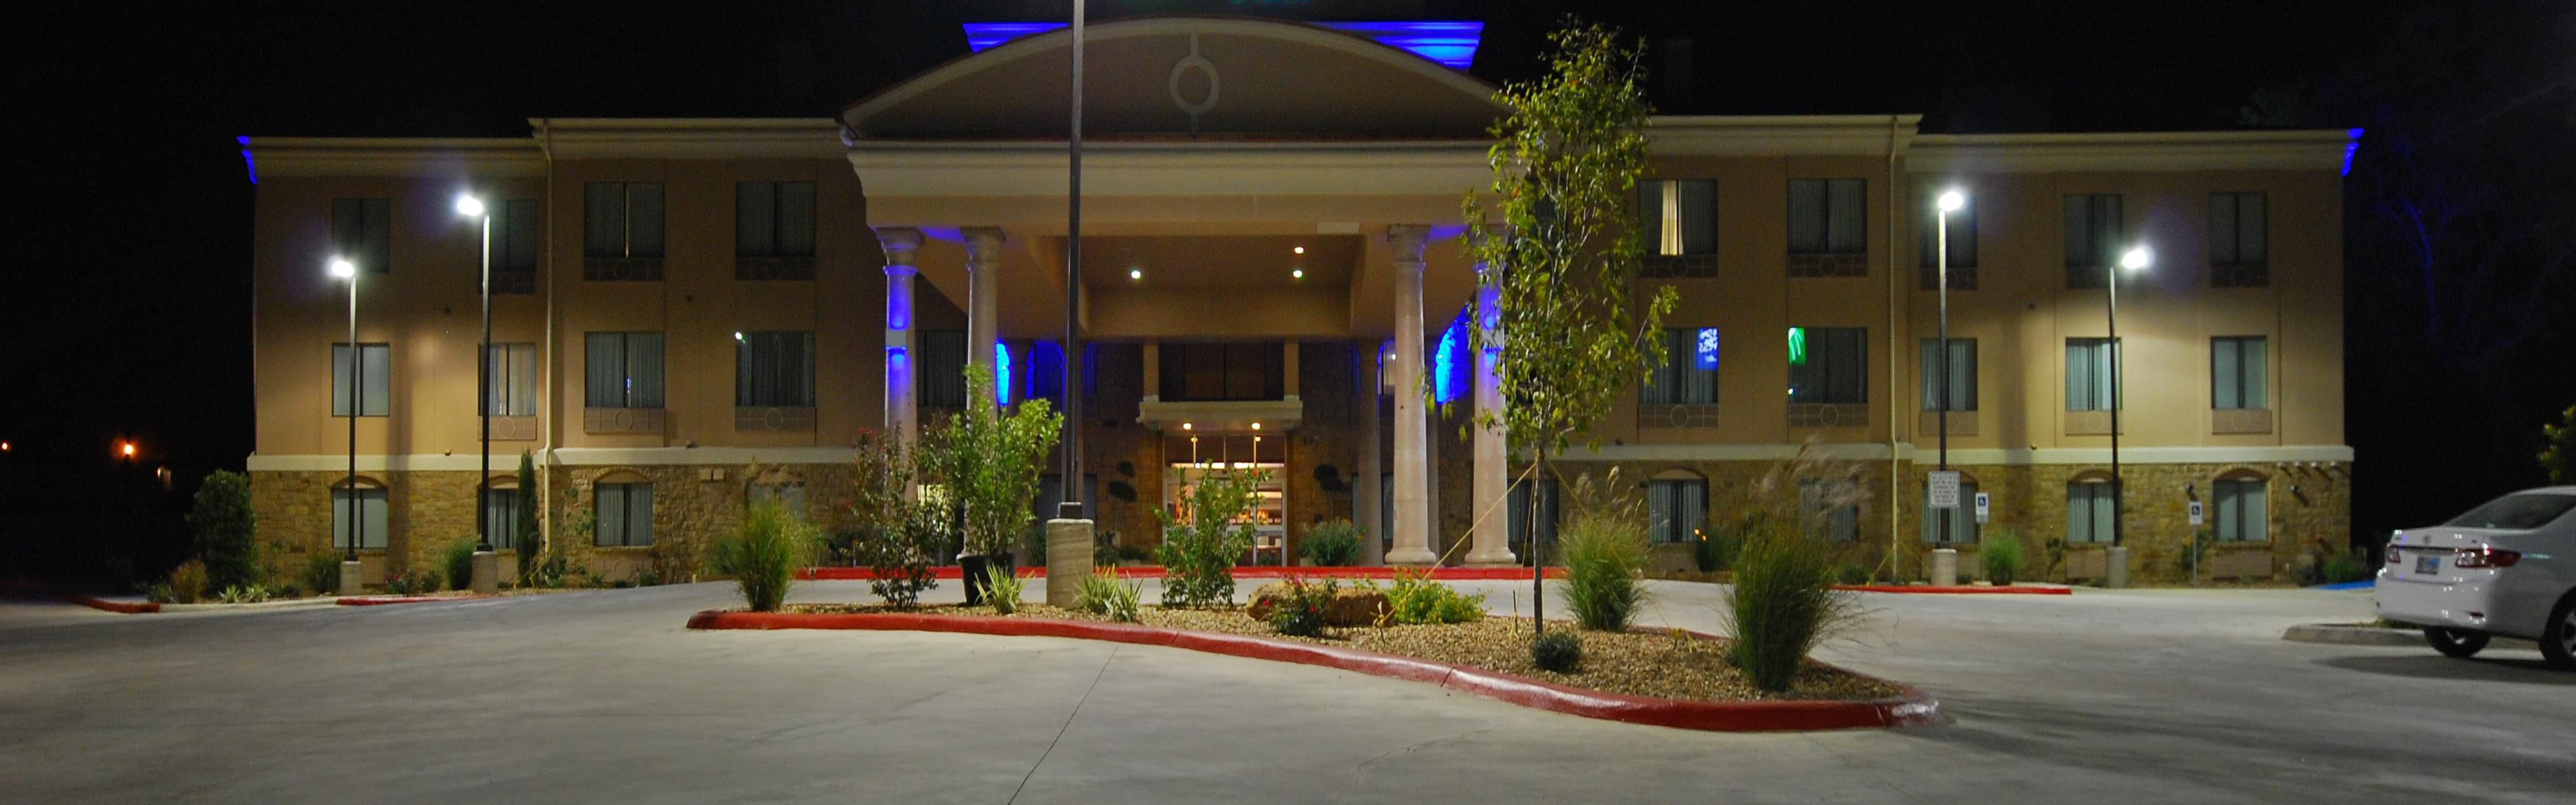 Holiday Inn Express & Suites Gonzales image 0